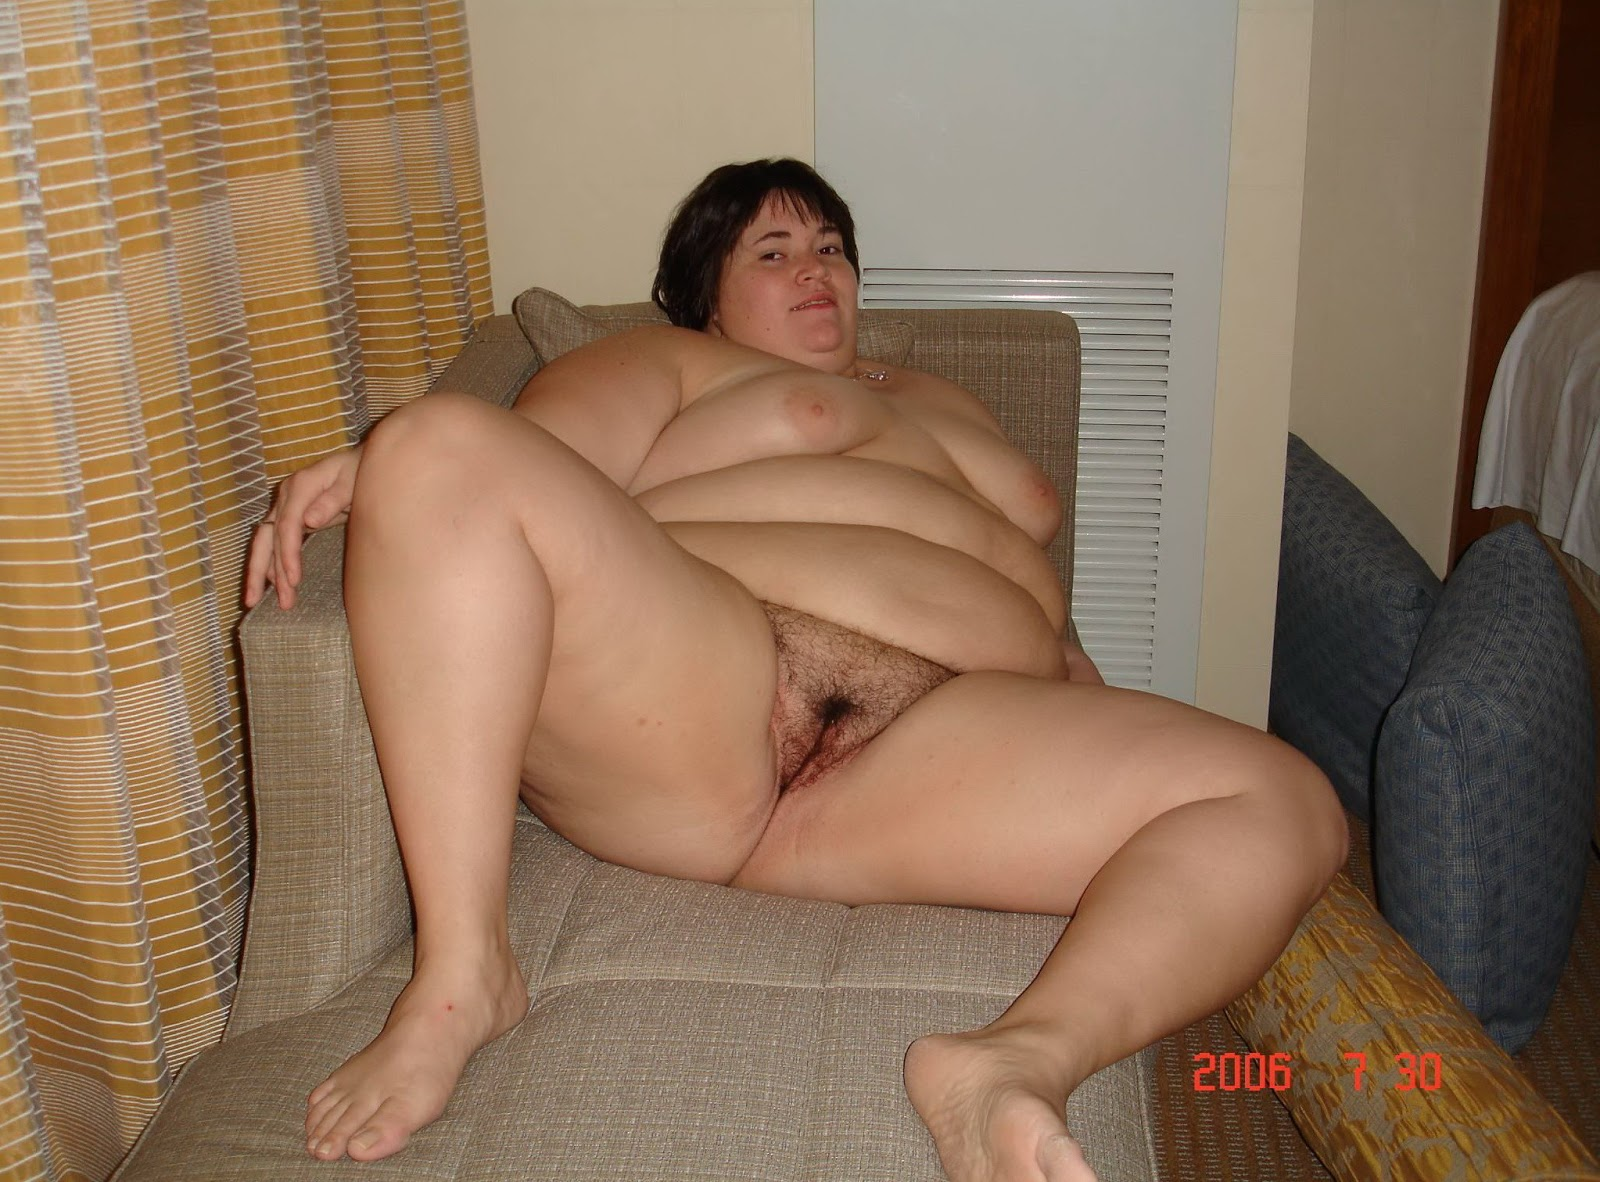 Fat hairy mature nudist foto